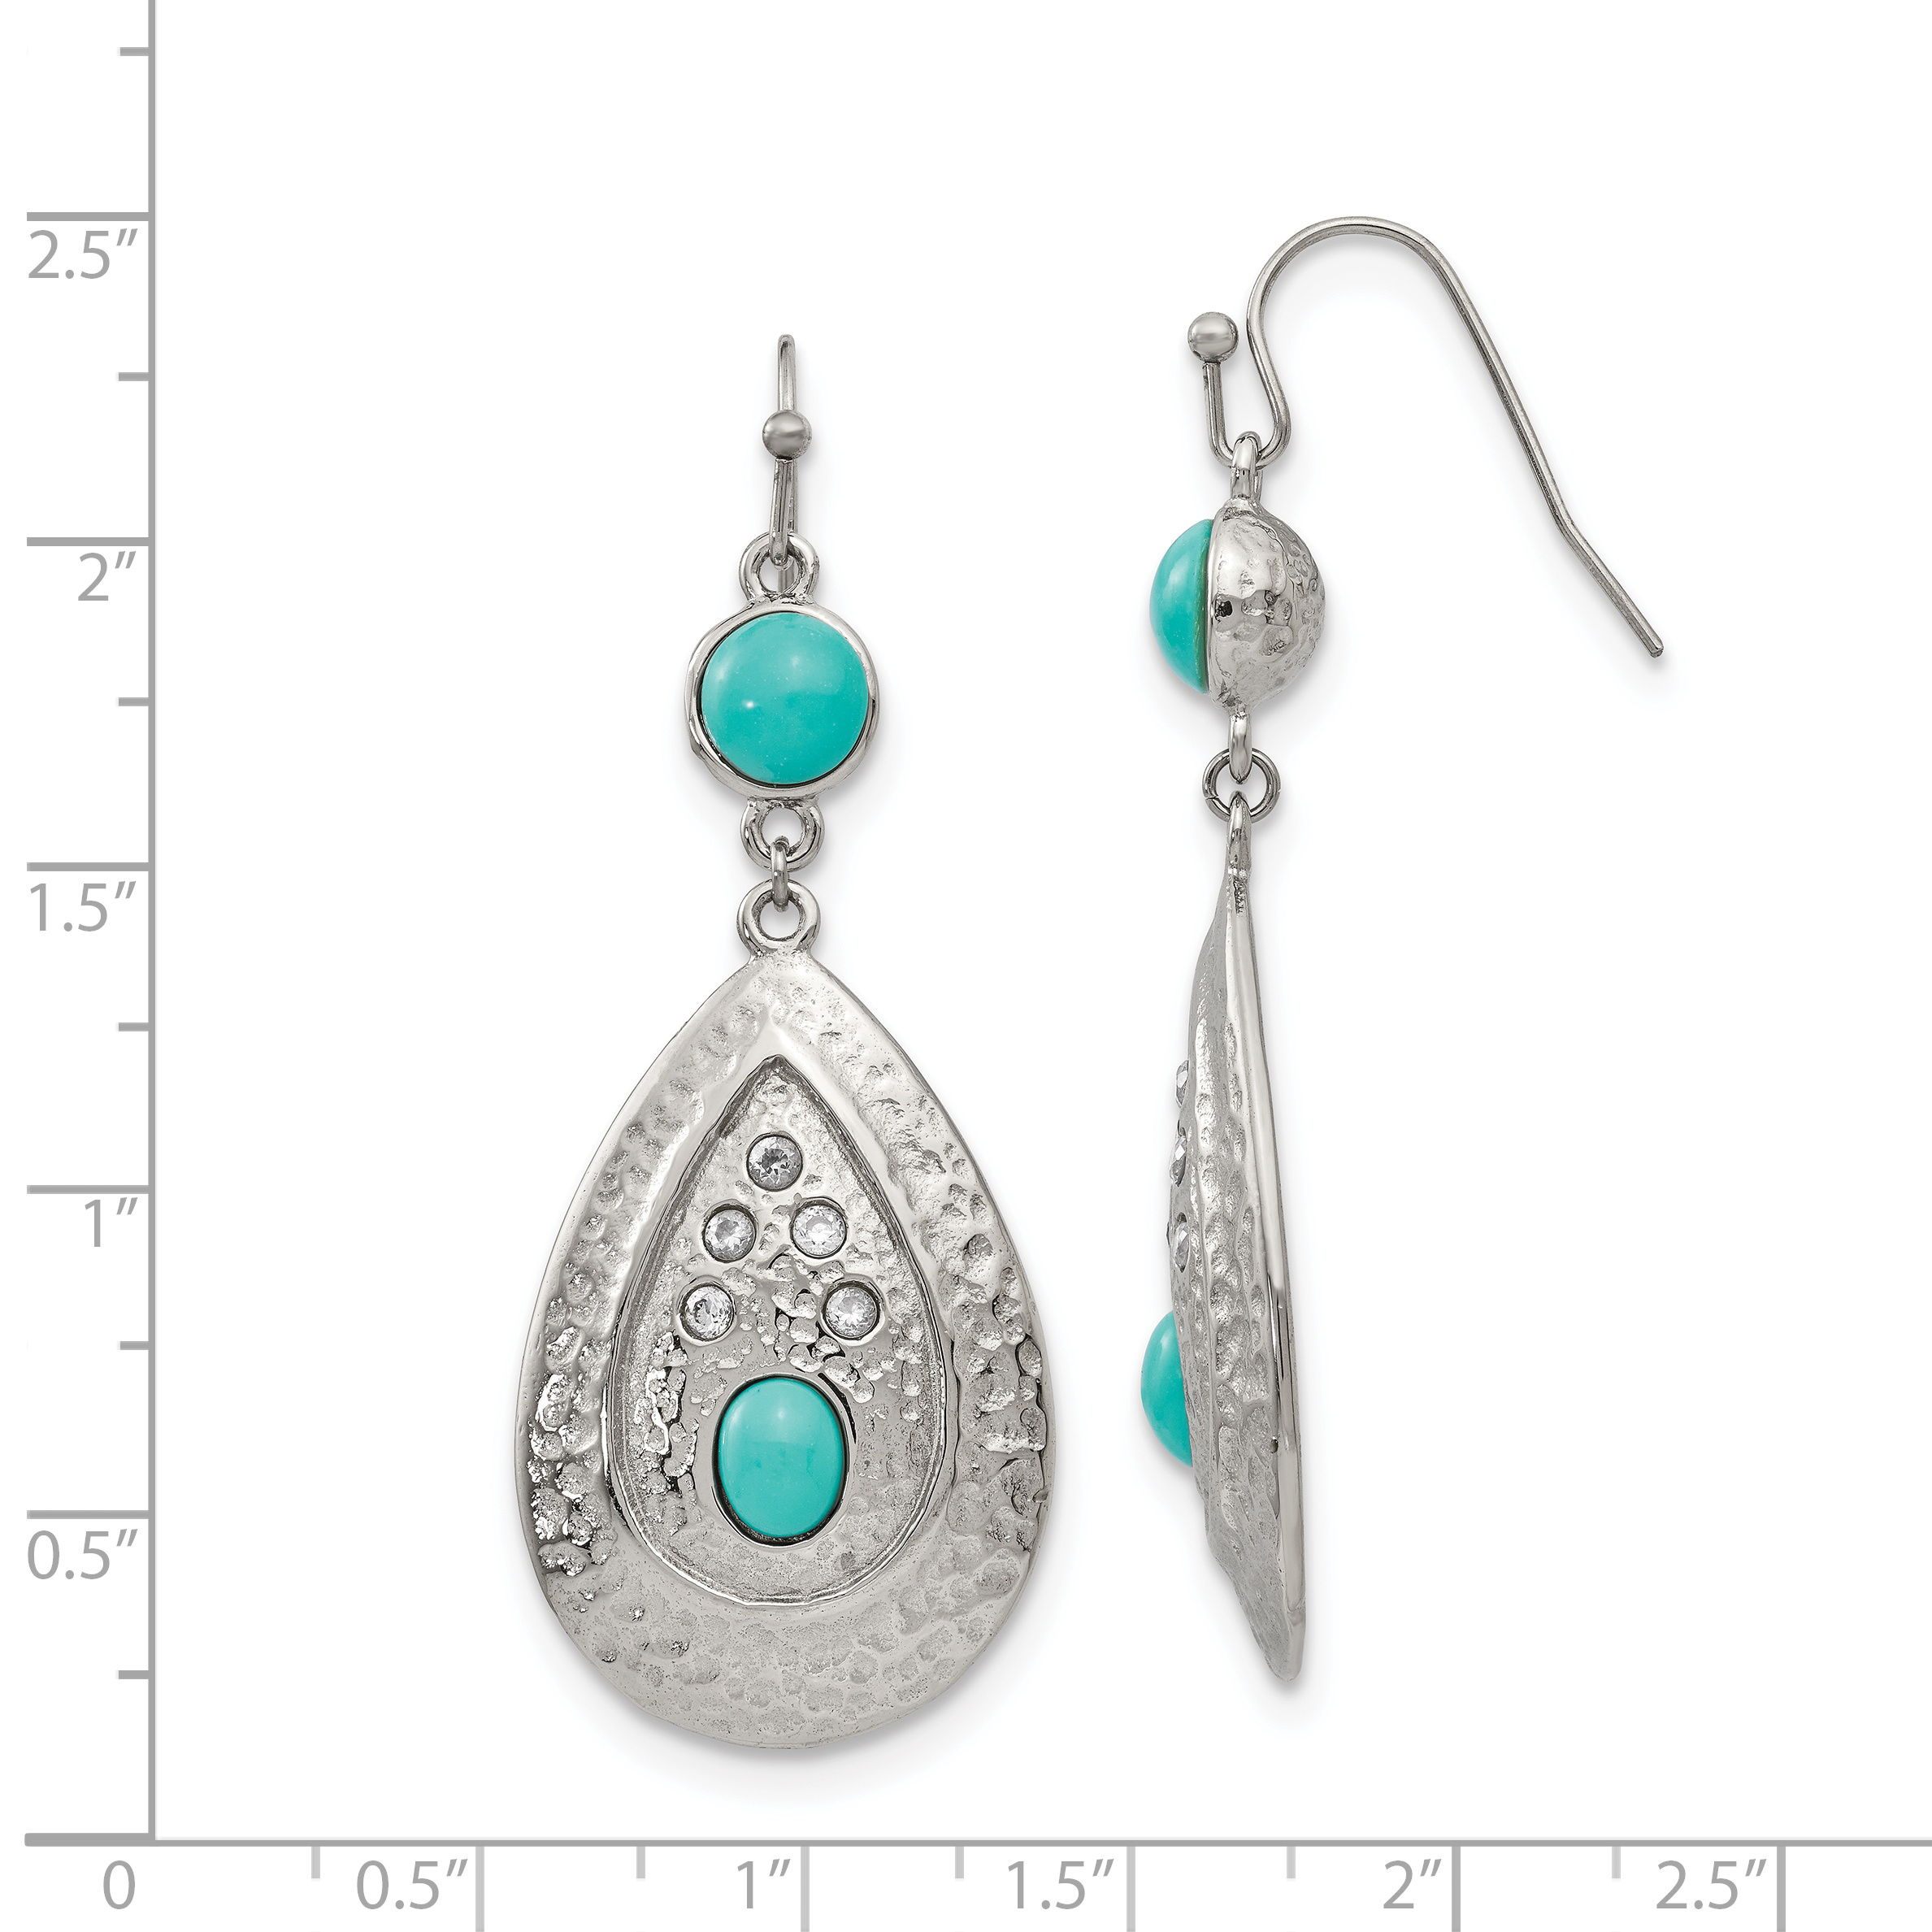 Stainless Steel Polished/Hammered Imitation Turquoise/CZ Earrings - image 2 of 4